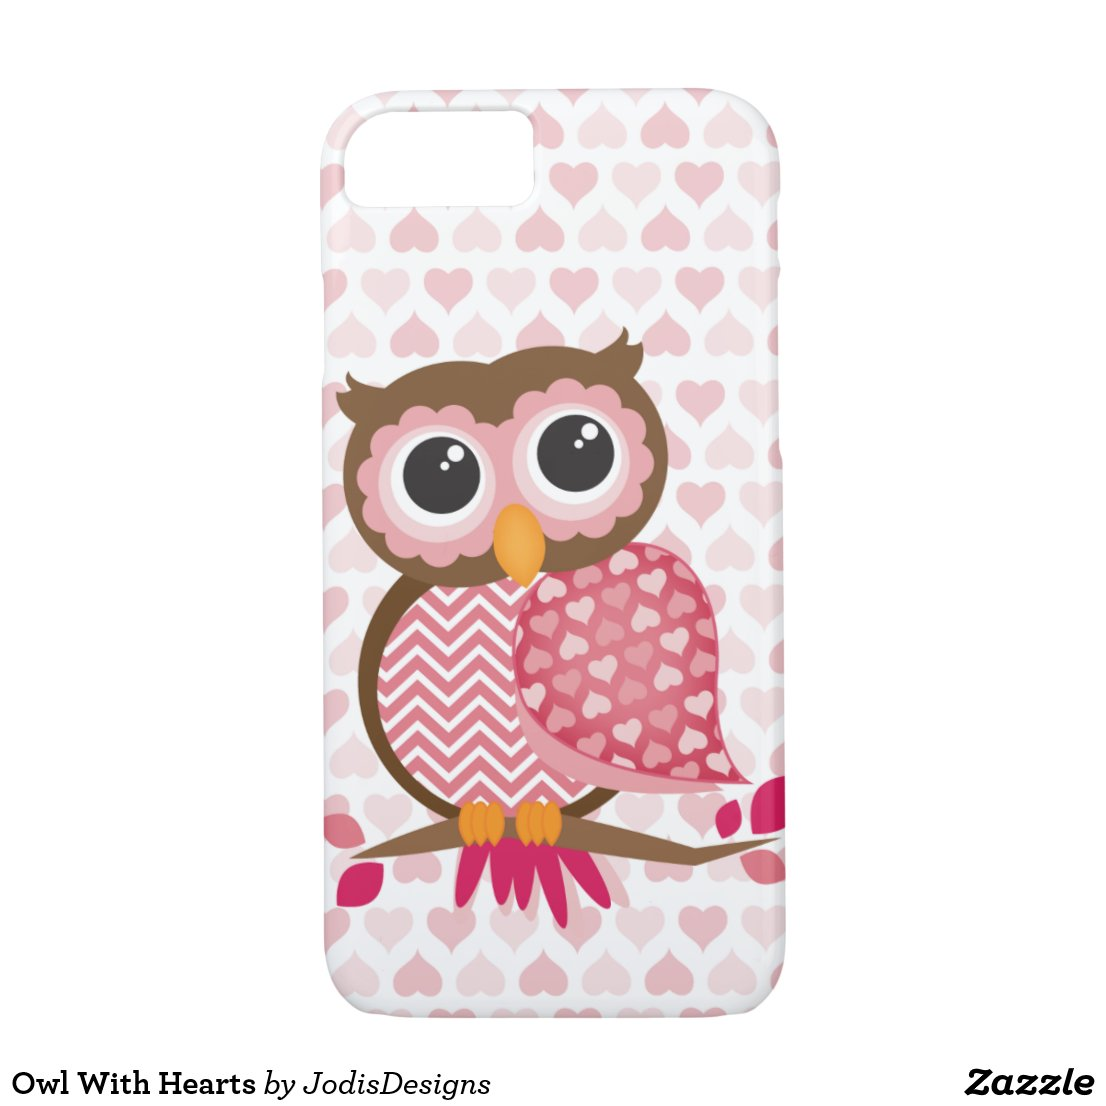 Owl With Hearts iPhone Case